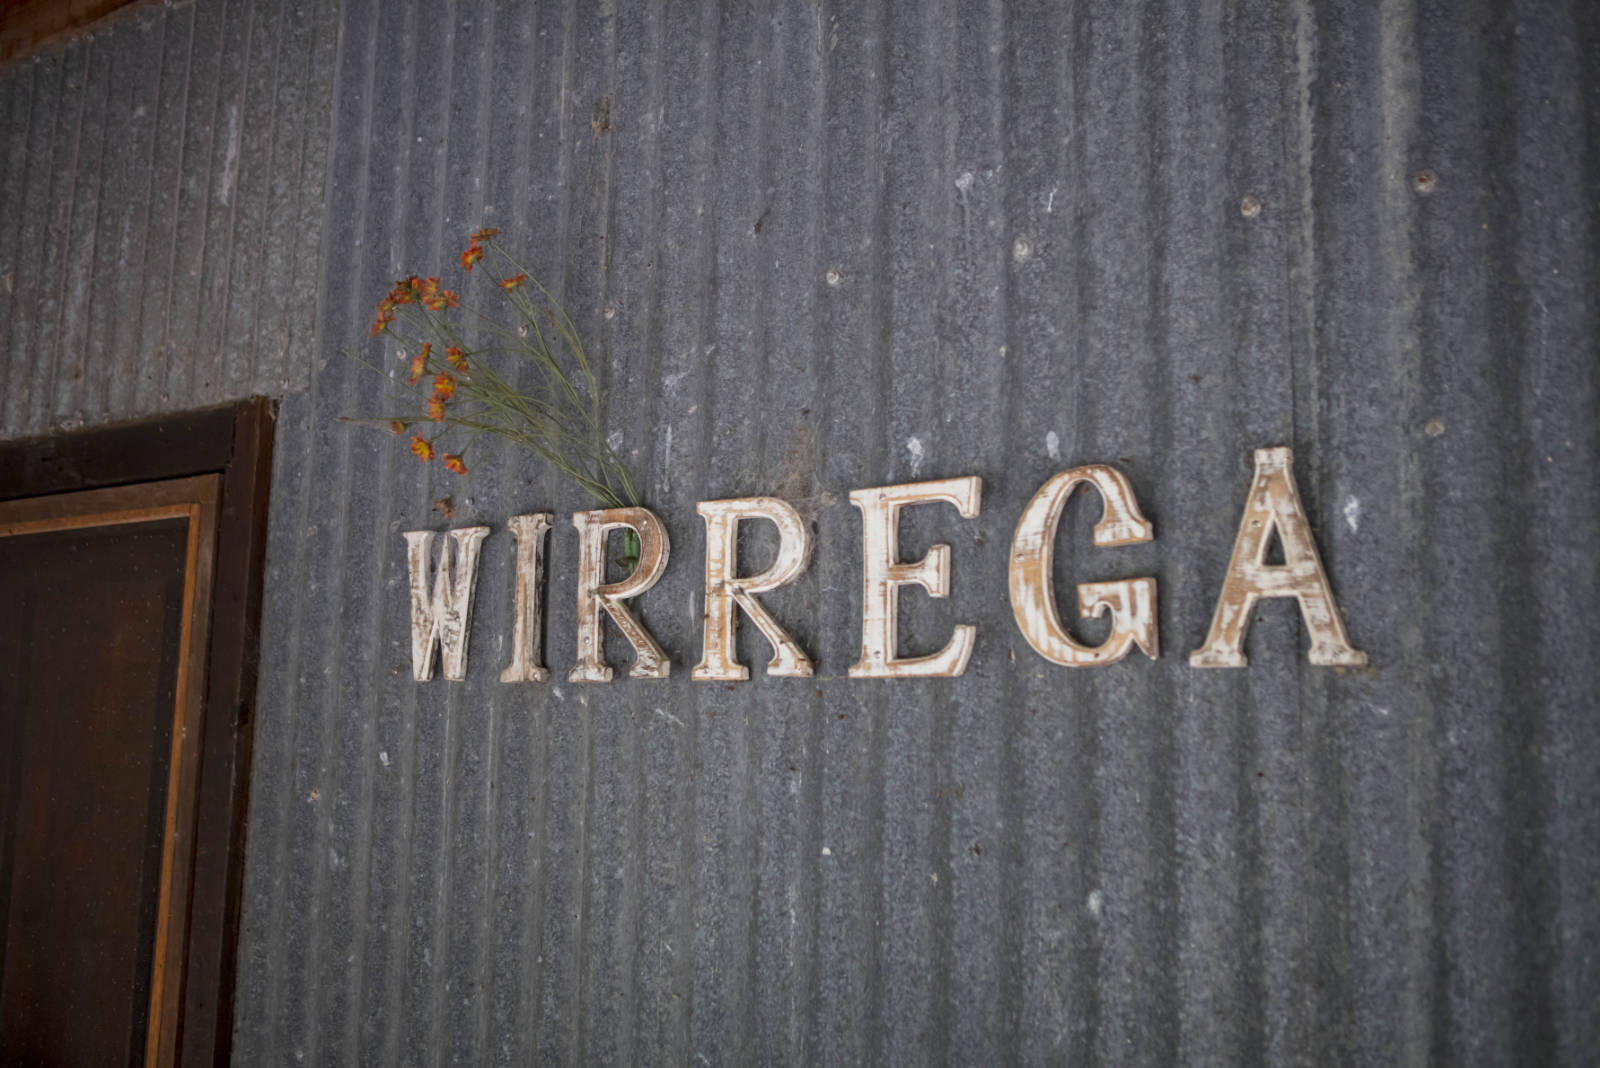 Wirrega name sign - Barn at Bear Gully